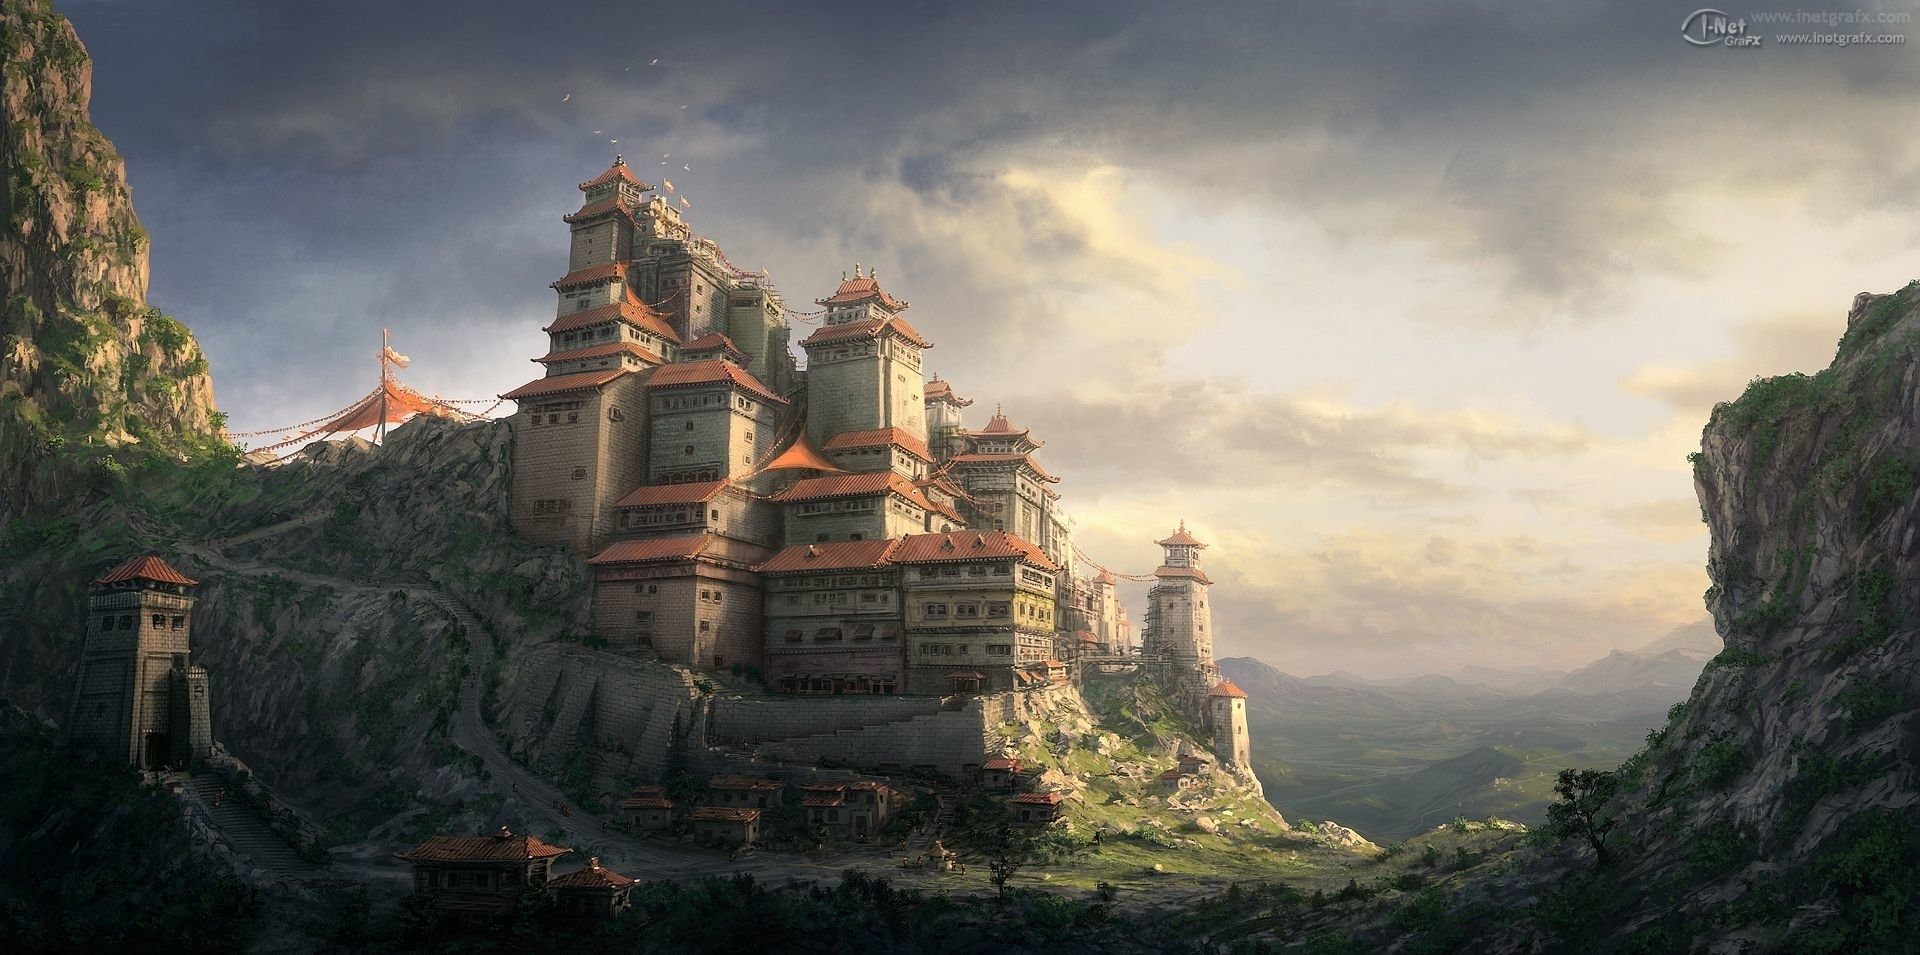 397 castle hd wallpapers | background images - wallpaper abyss